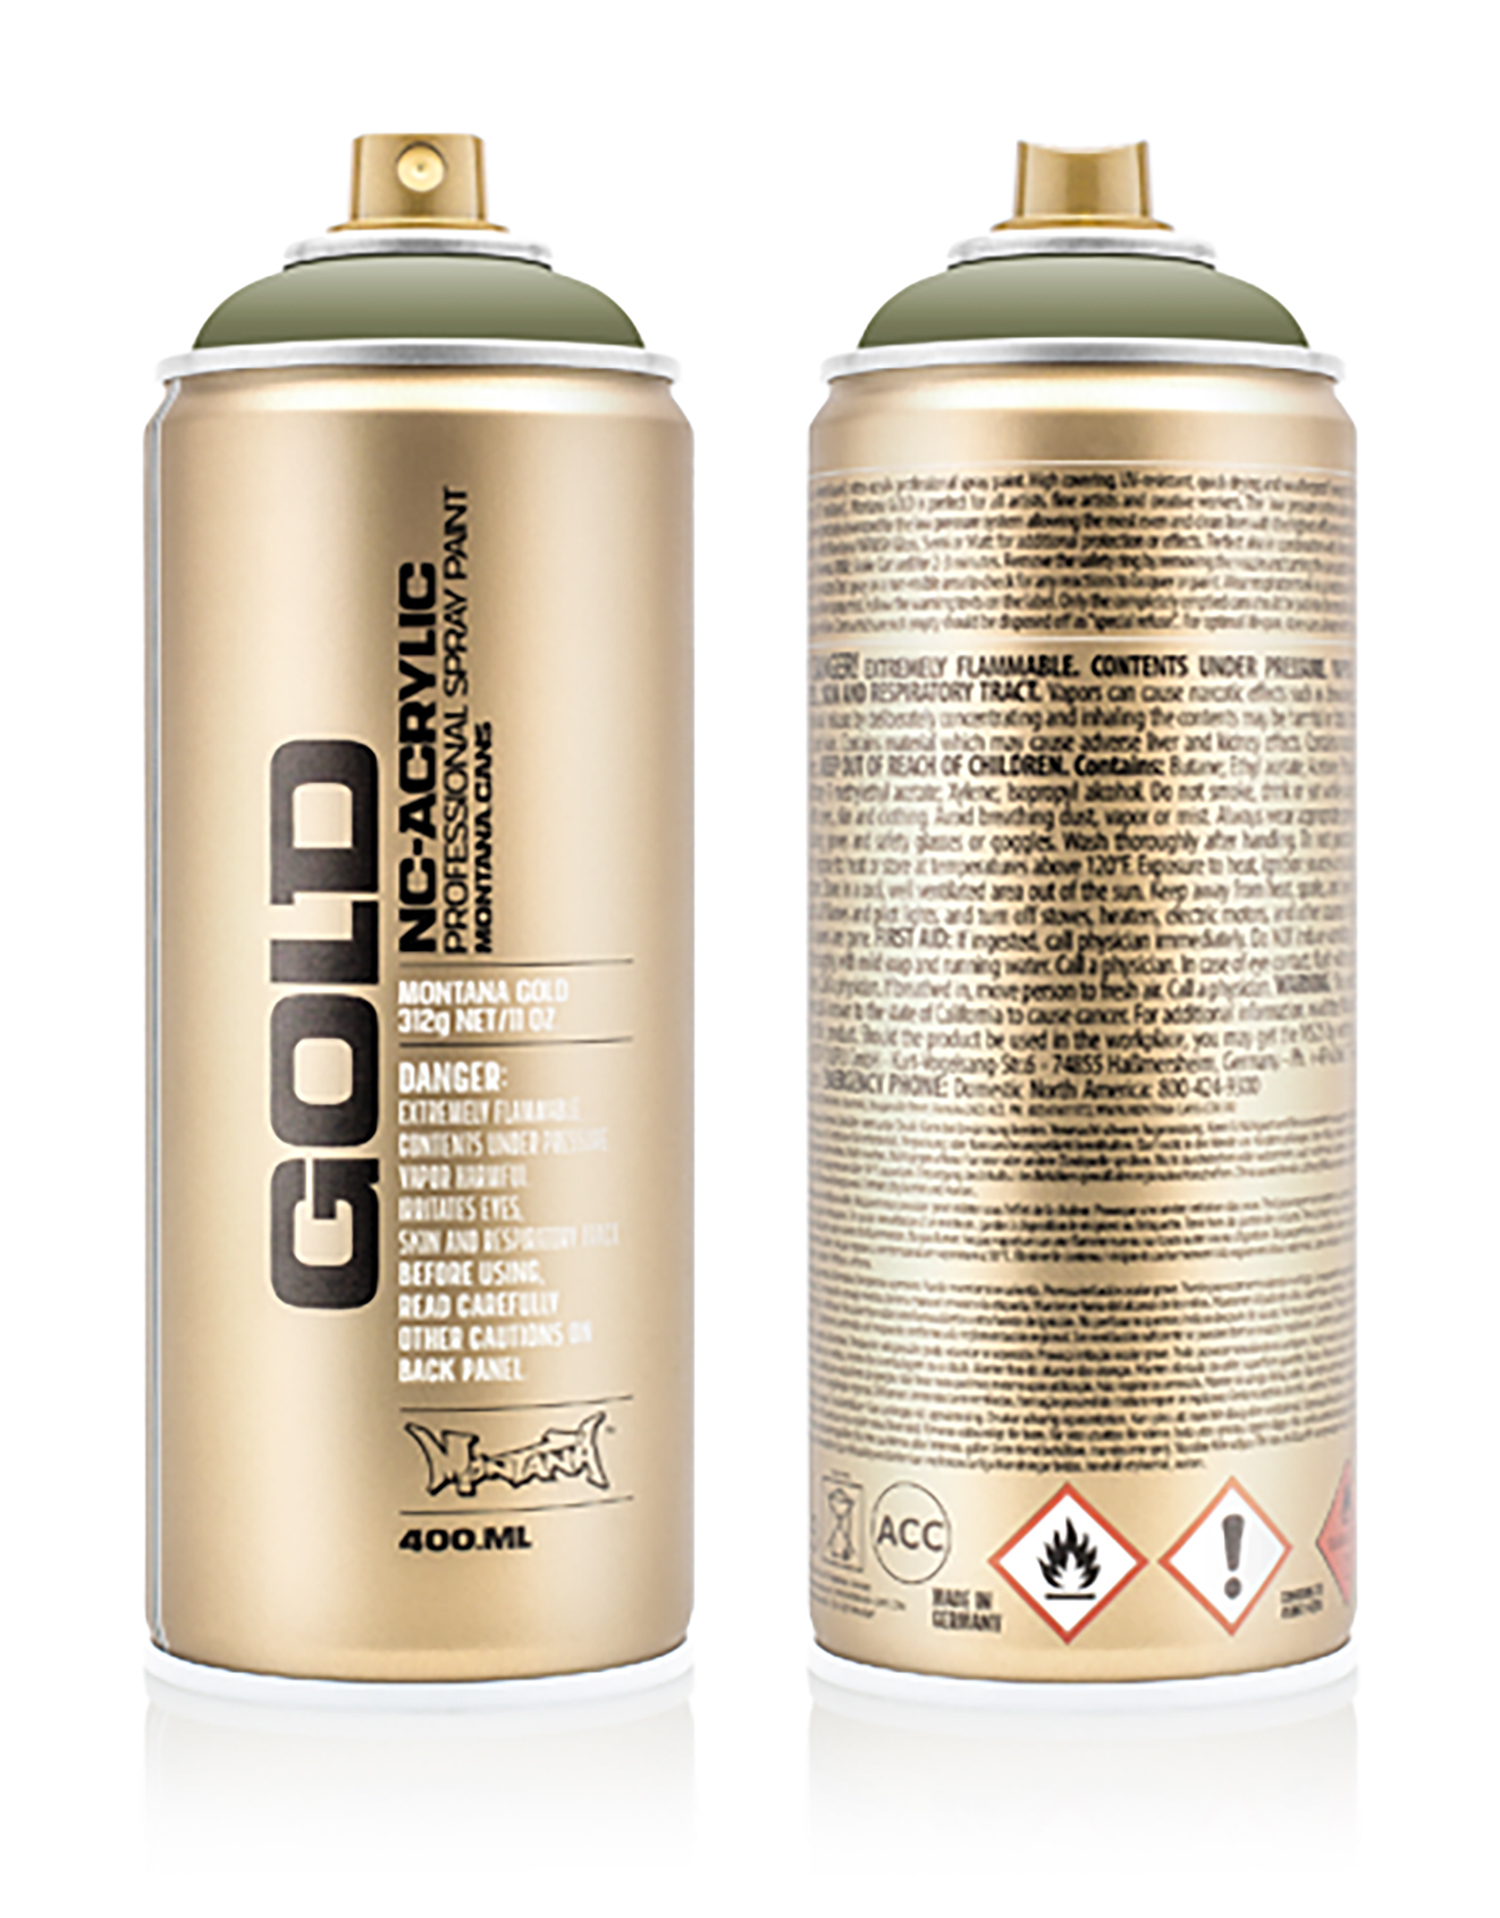 MONTANA-GOLD-SPRAY-400ML-CL-6410